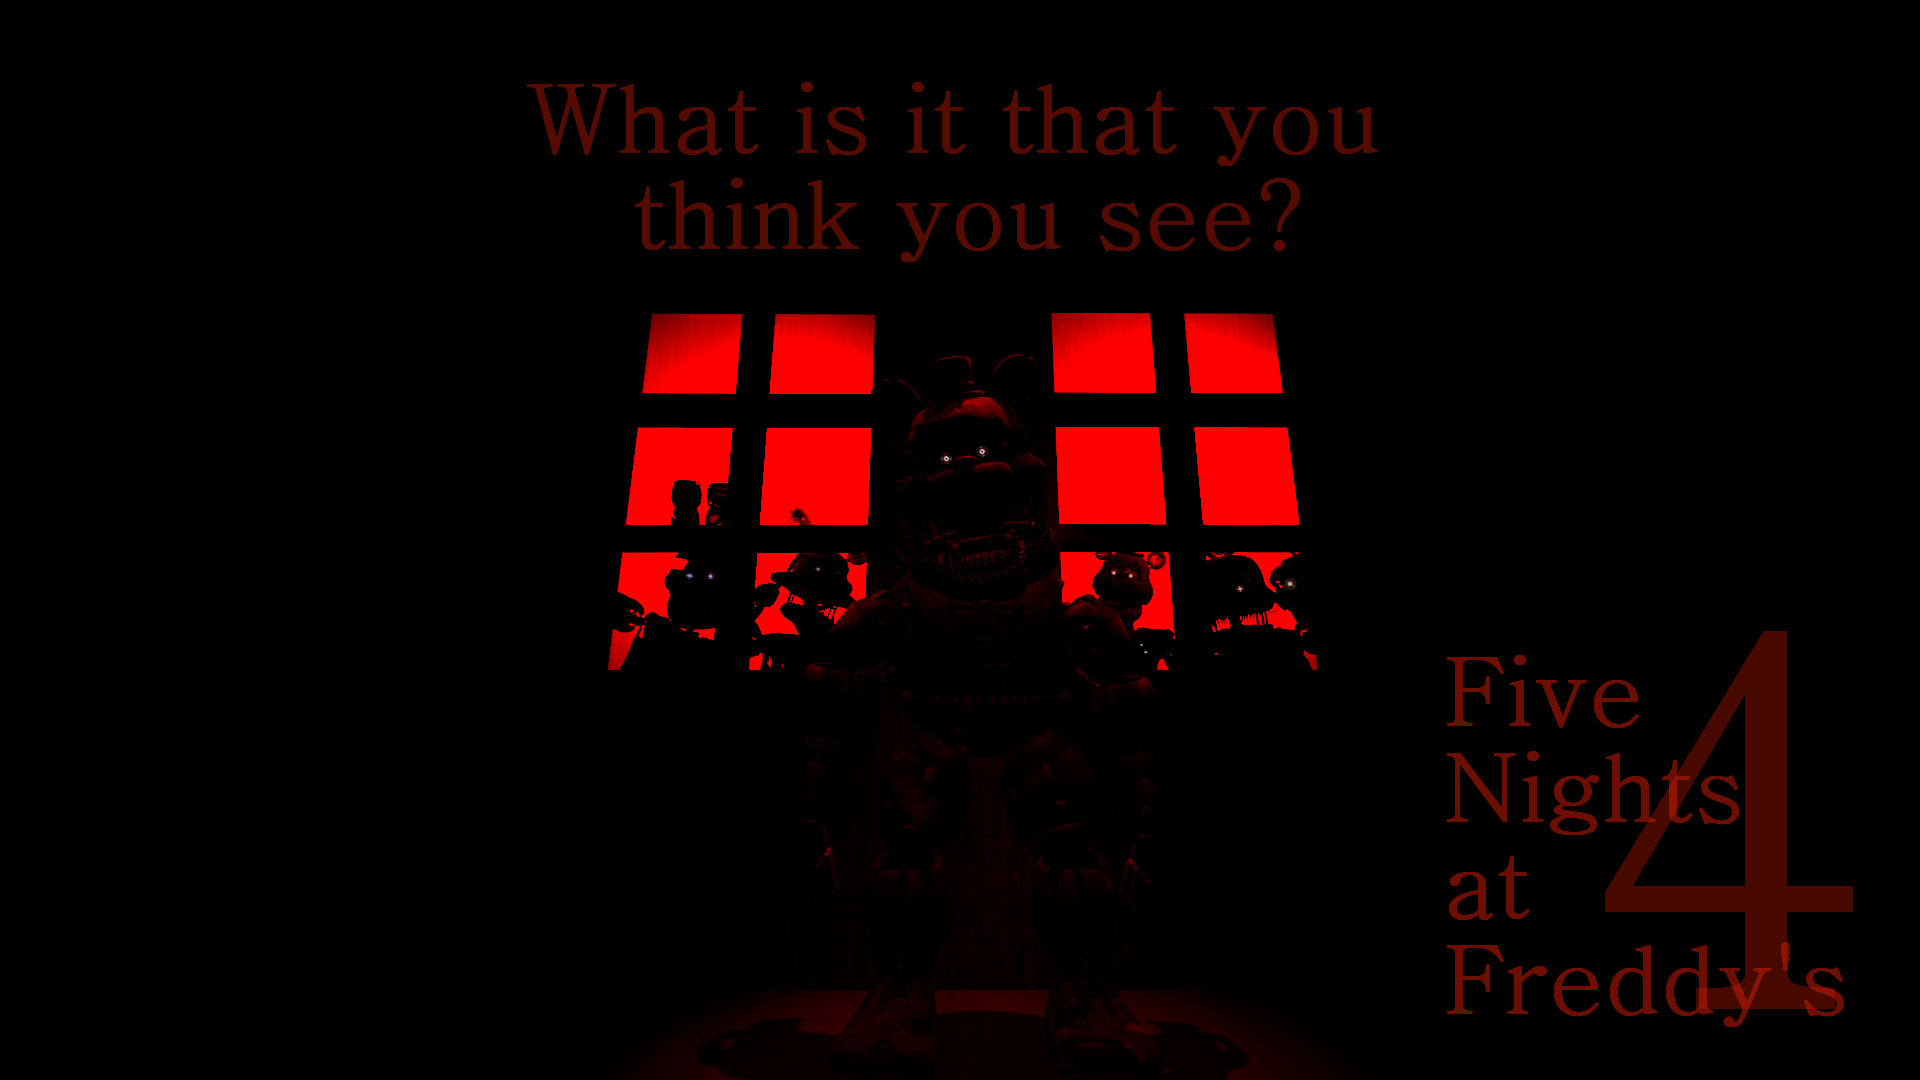 ImageI edited my FNaF 4 Desktop BG slightly, making the text myself to  improve the quality. What do you think now?